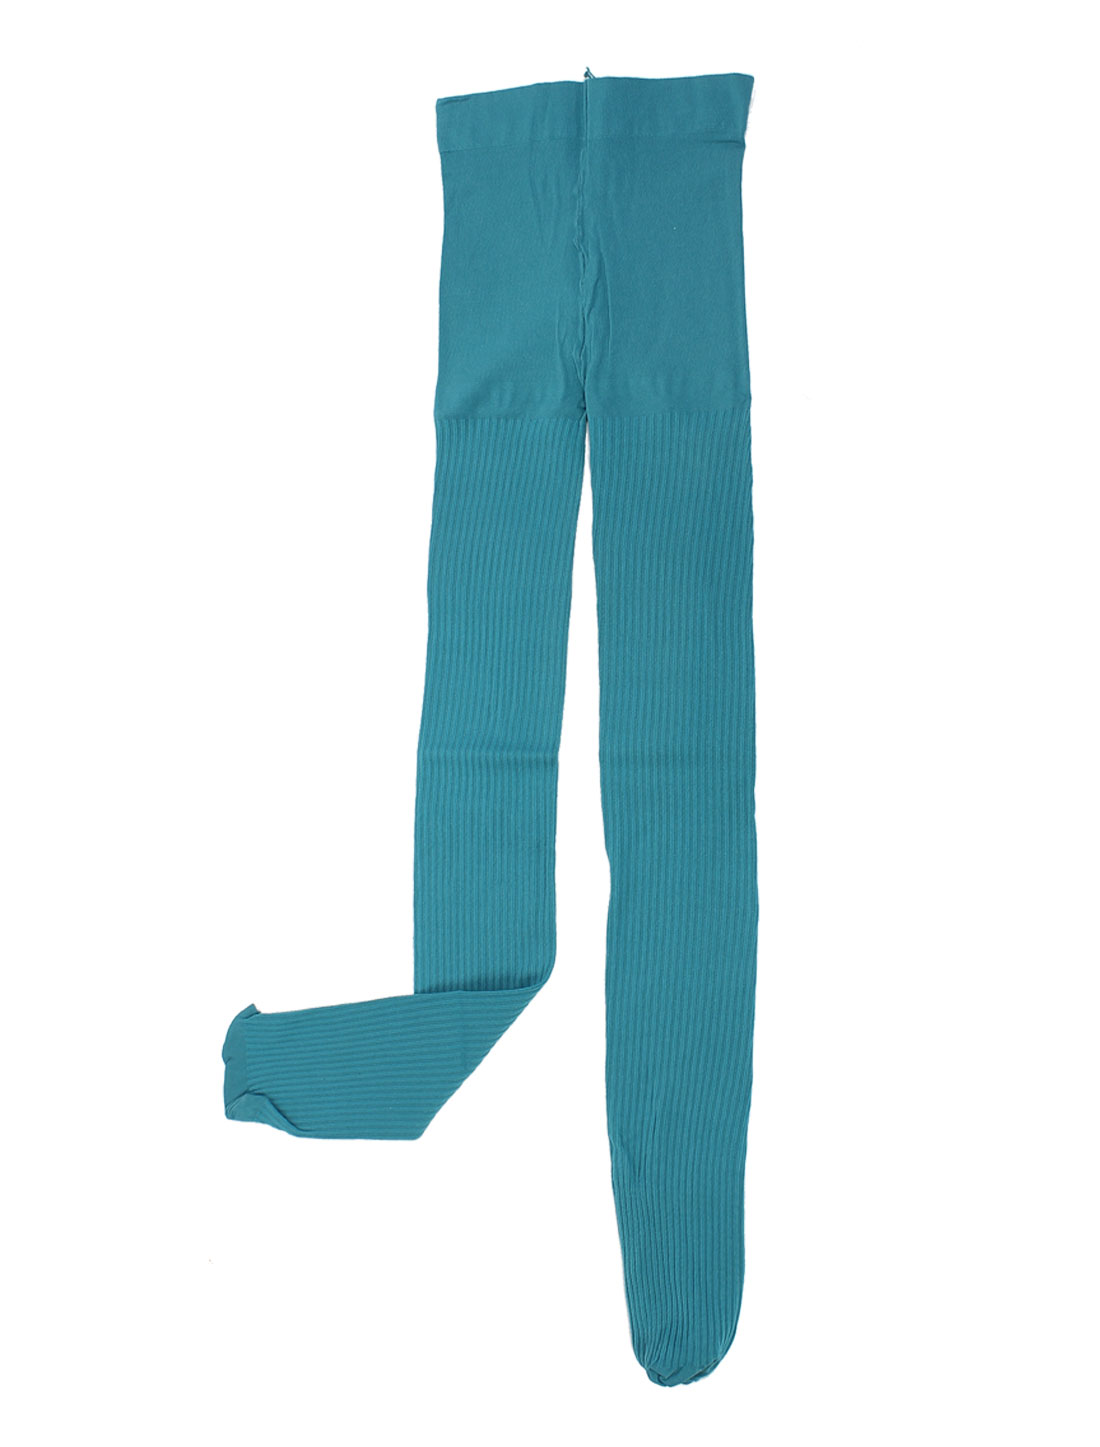 Lady Teal Striped Stretchy Footed Formfitting Stockings Pants Pantyhose XS